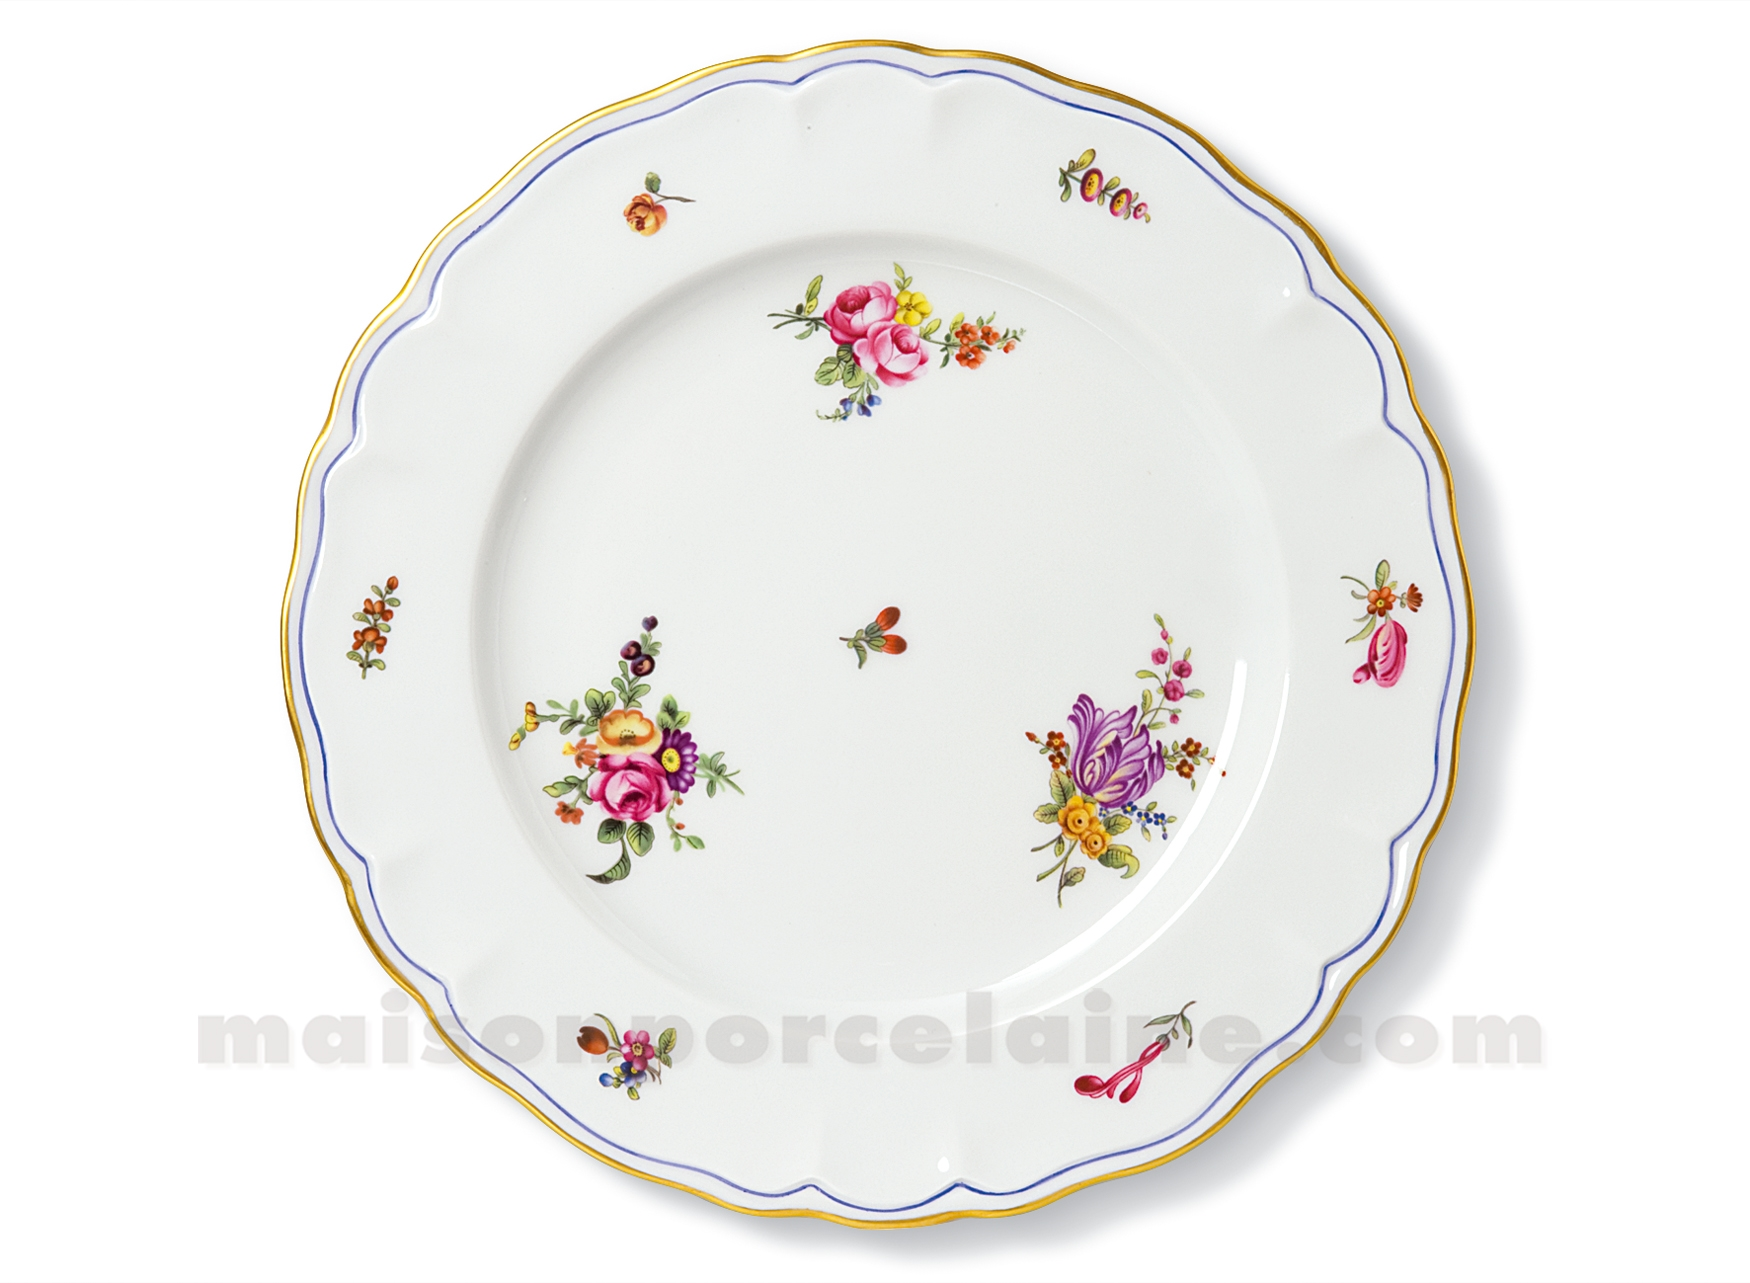 assiette plate limoges choiseul d27 maison de la porcelaine. Black Bedroom Furniture Sets. Home Design Ideas